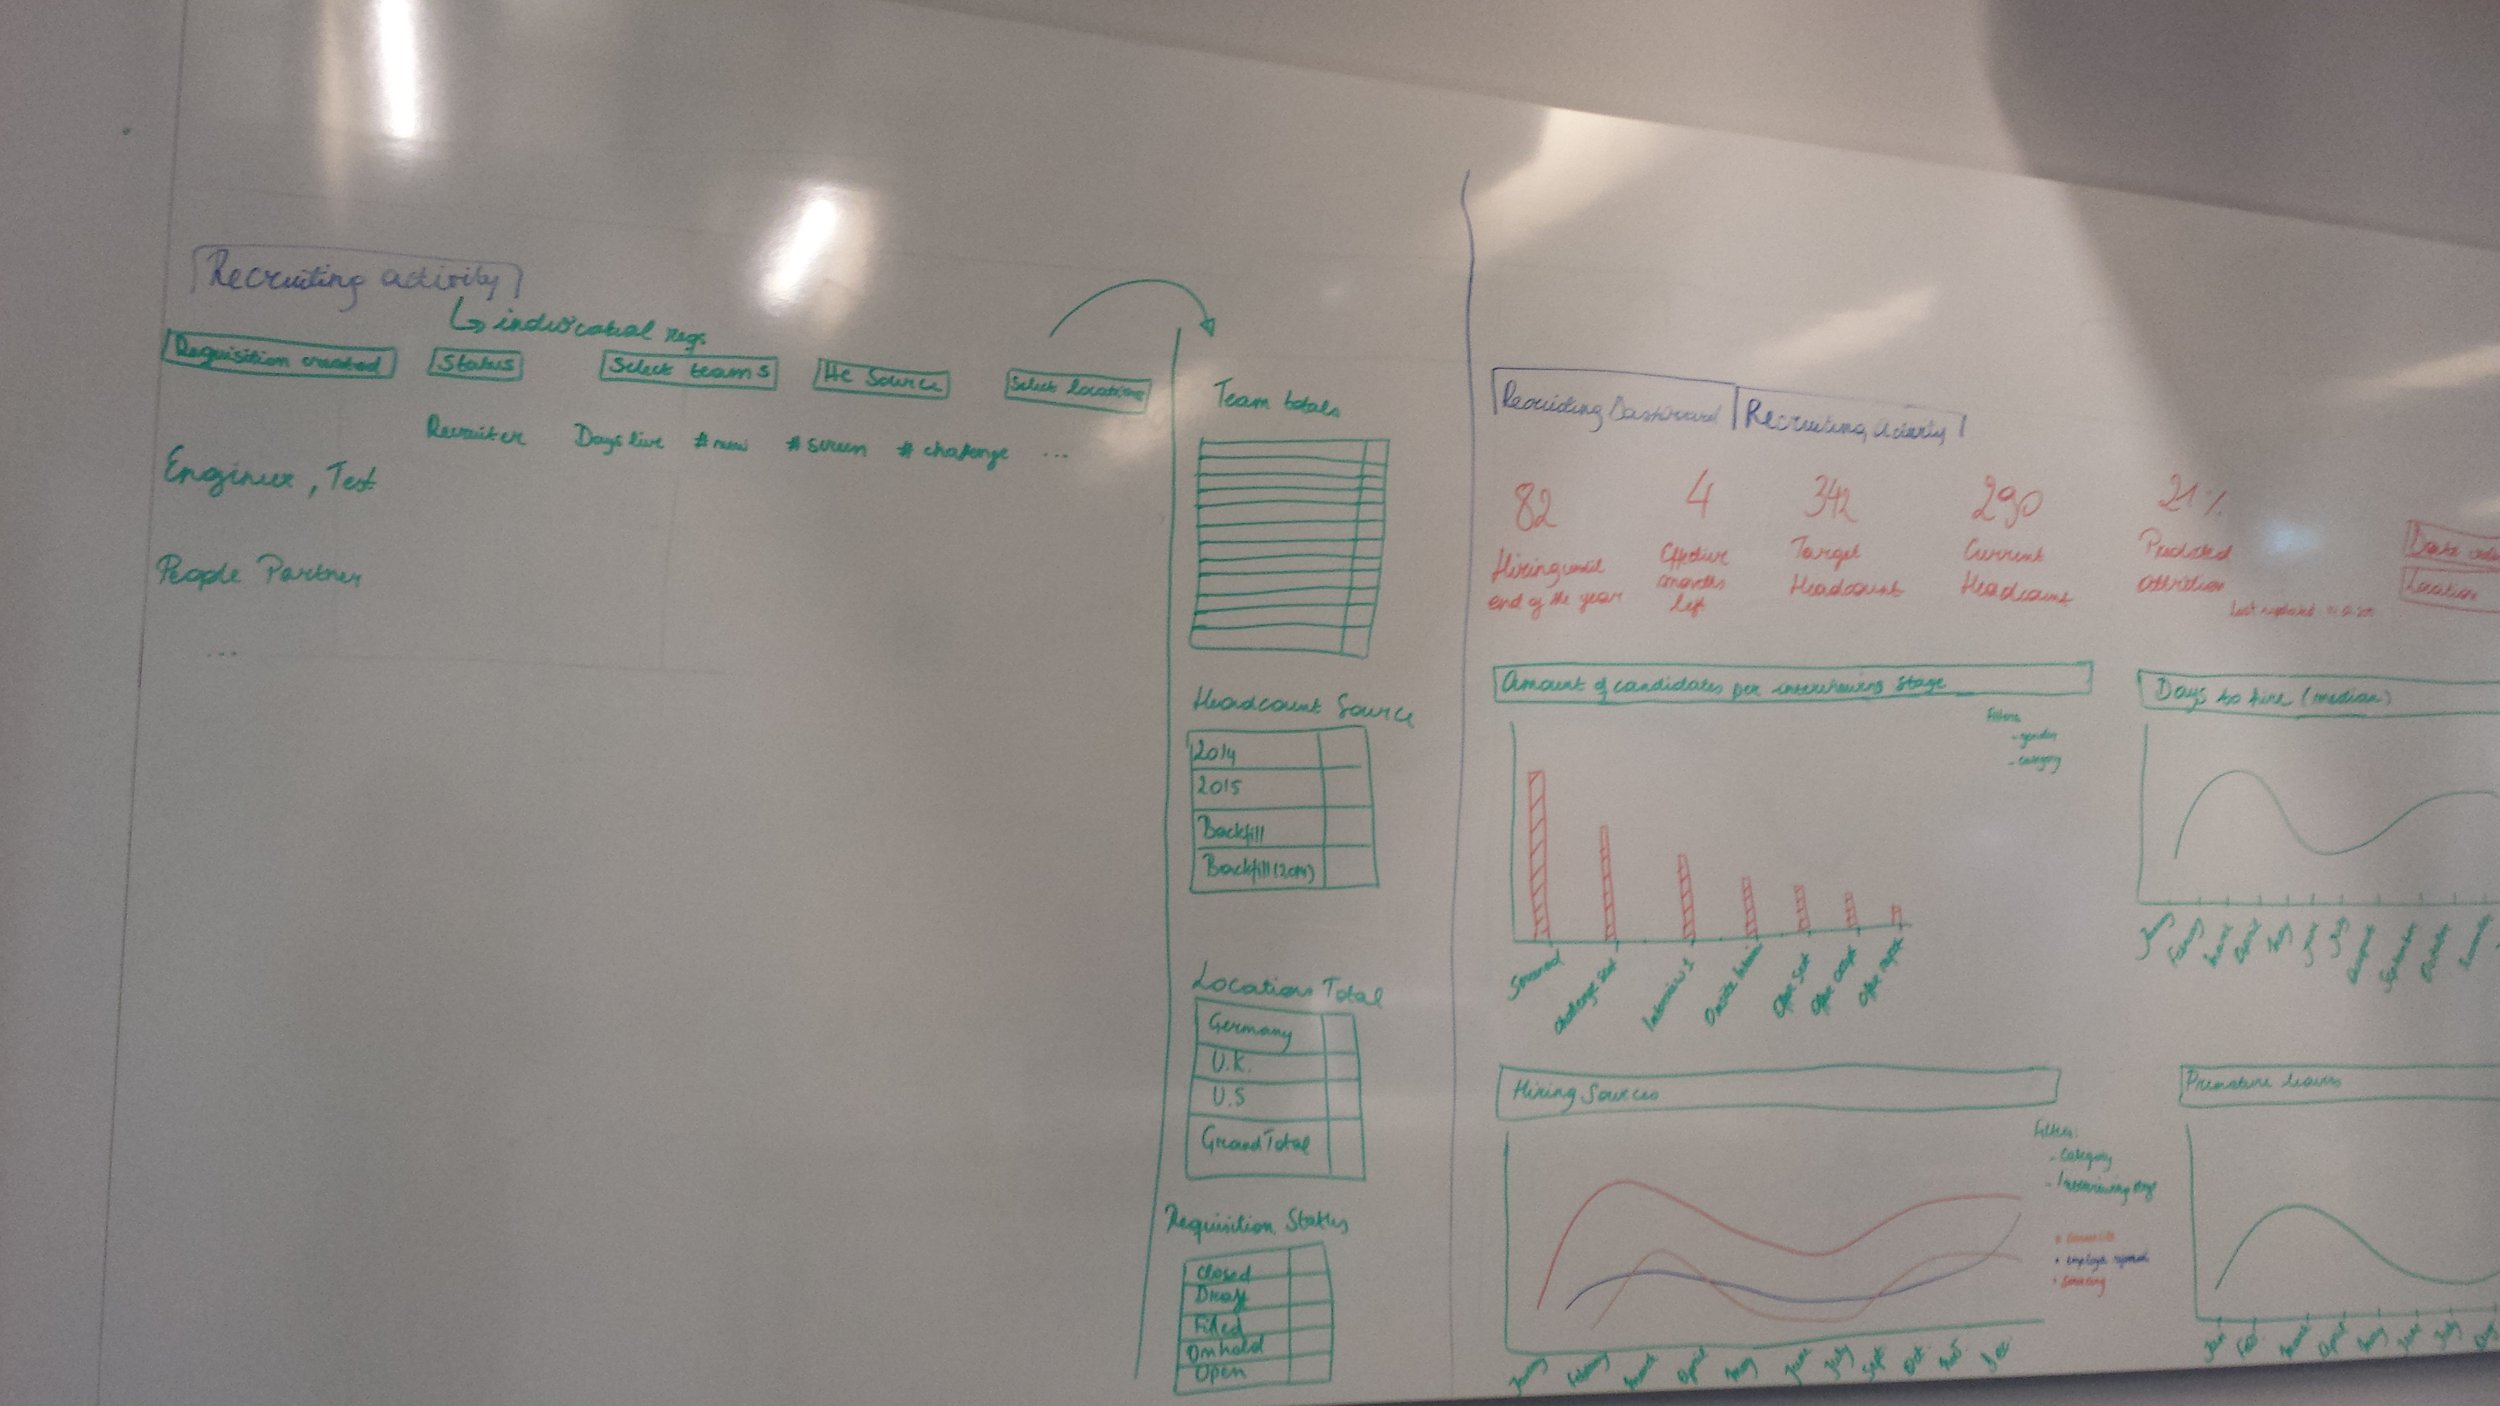 Our whiteboarding sessions for mocking up the layout of the dashboard